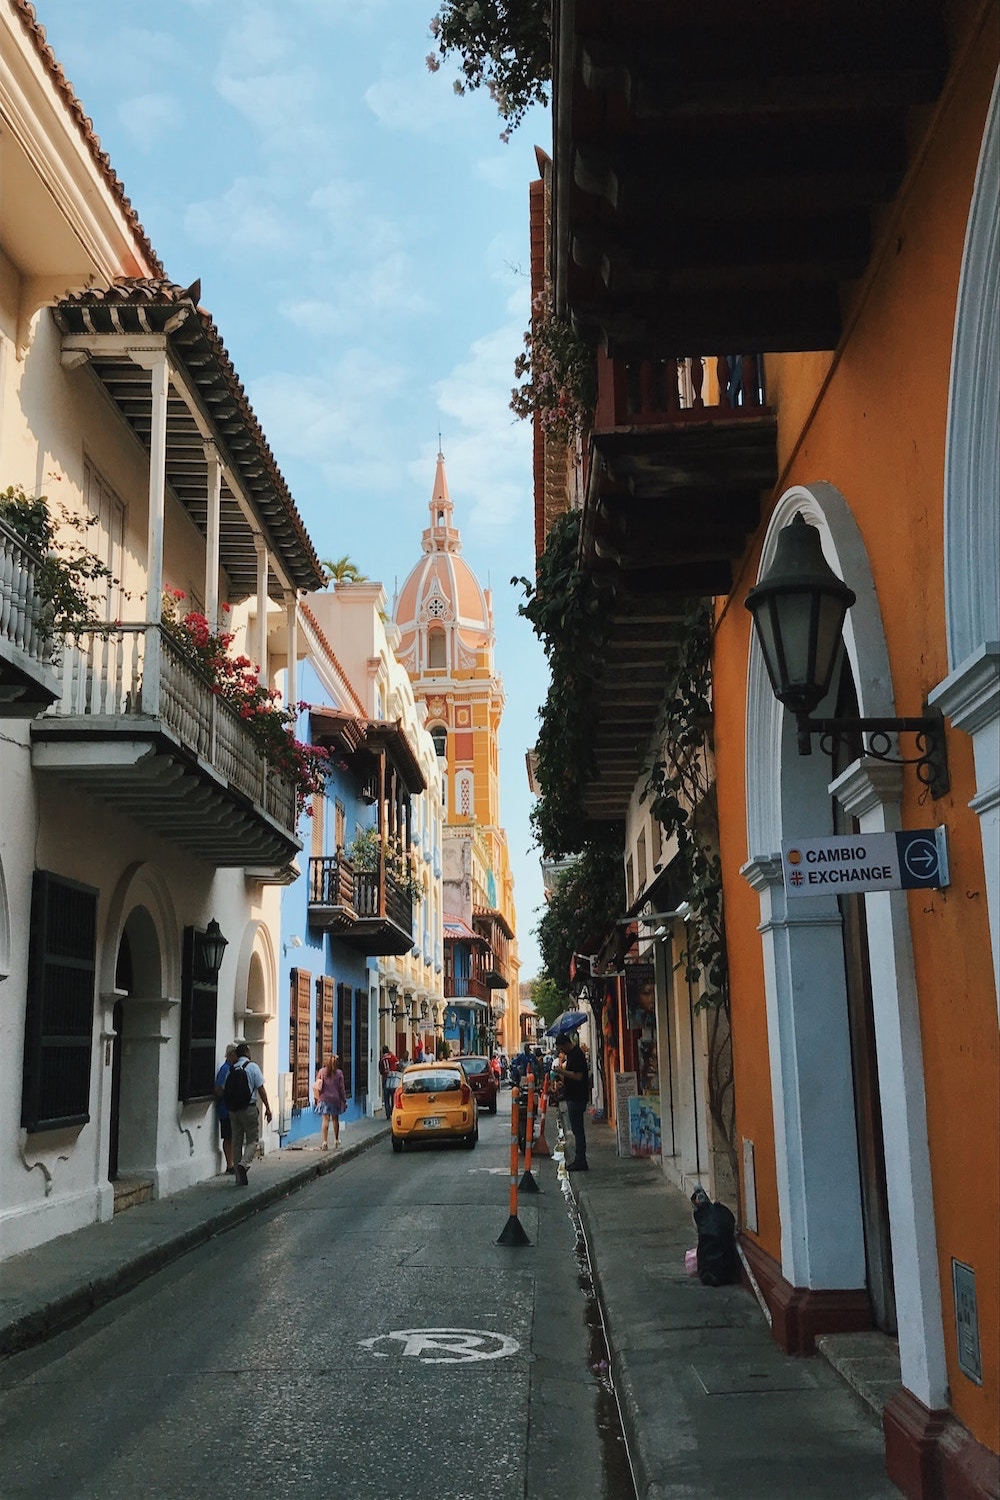 Plan South America | Cartagena old town, Colombia